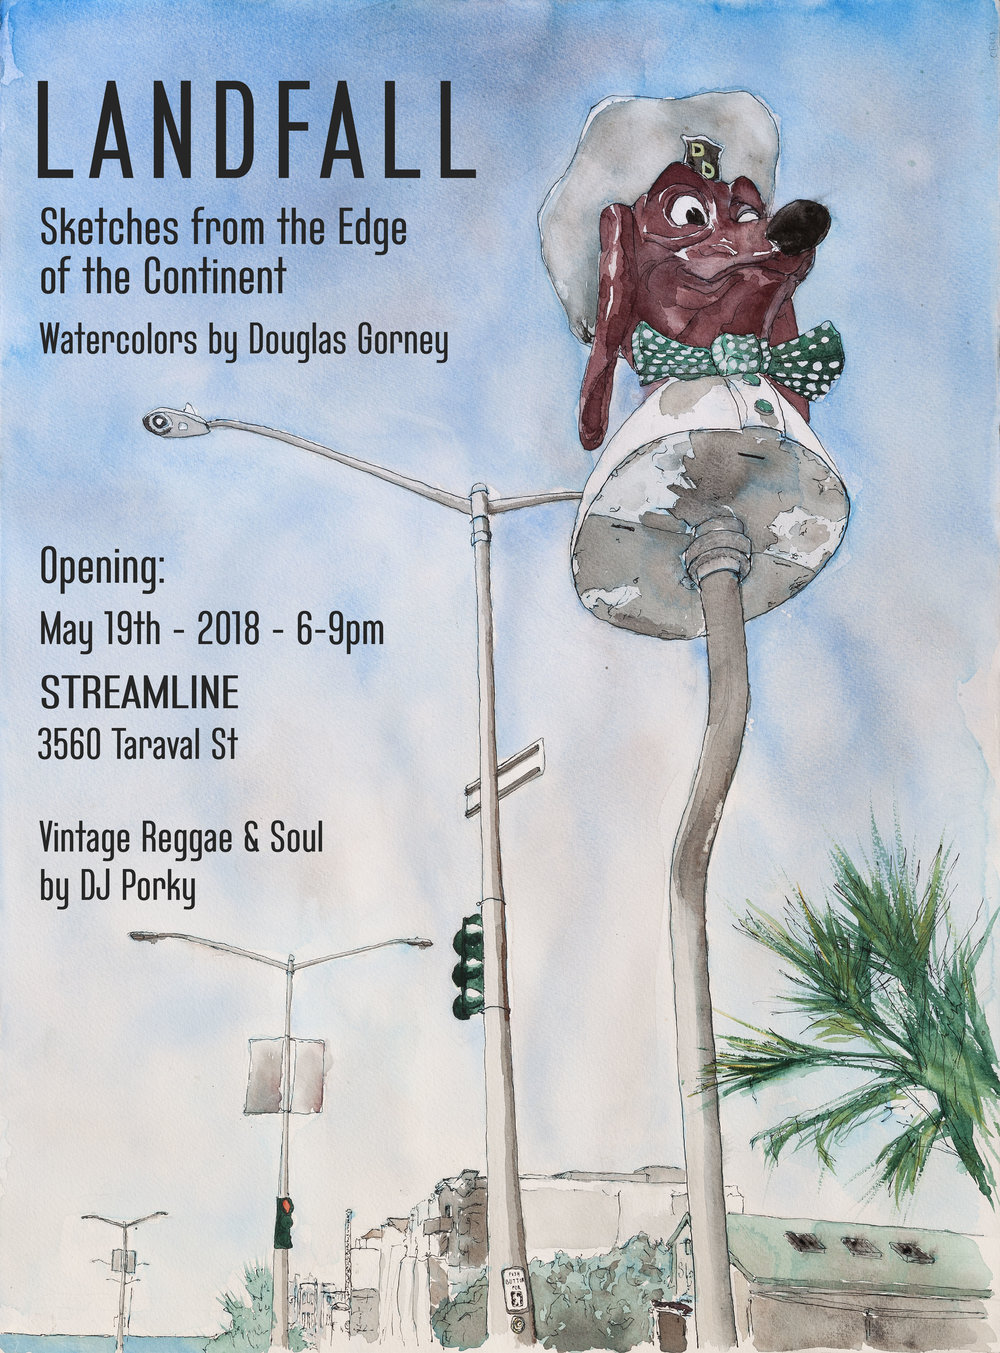 New watercolor sketches, prints and show posters for sale. Refreshments from Fort Point Beer Company will be available. Kids welcome!    http://www.streamlinesf.com/  -  Directions